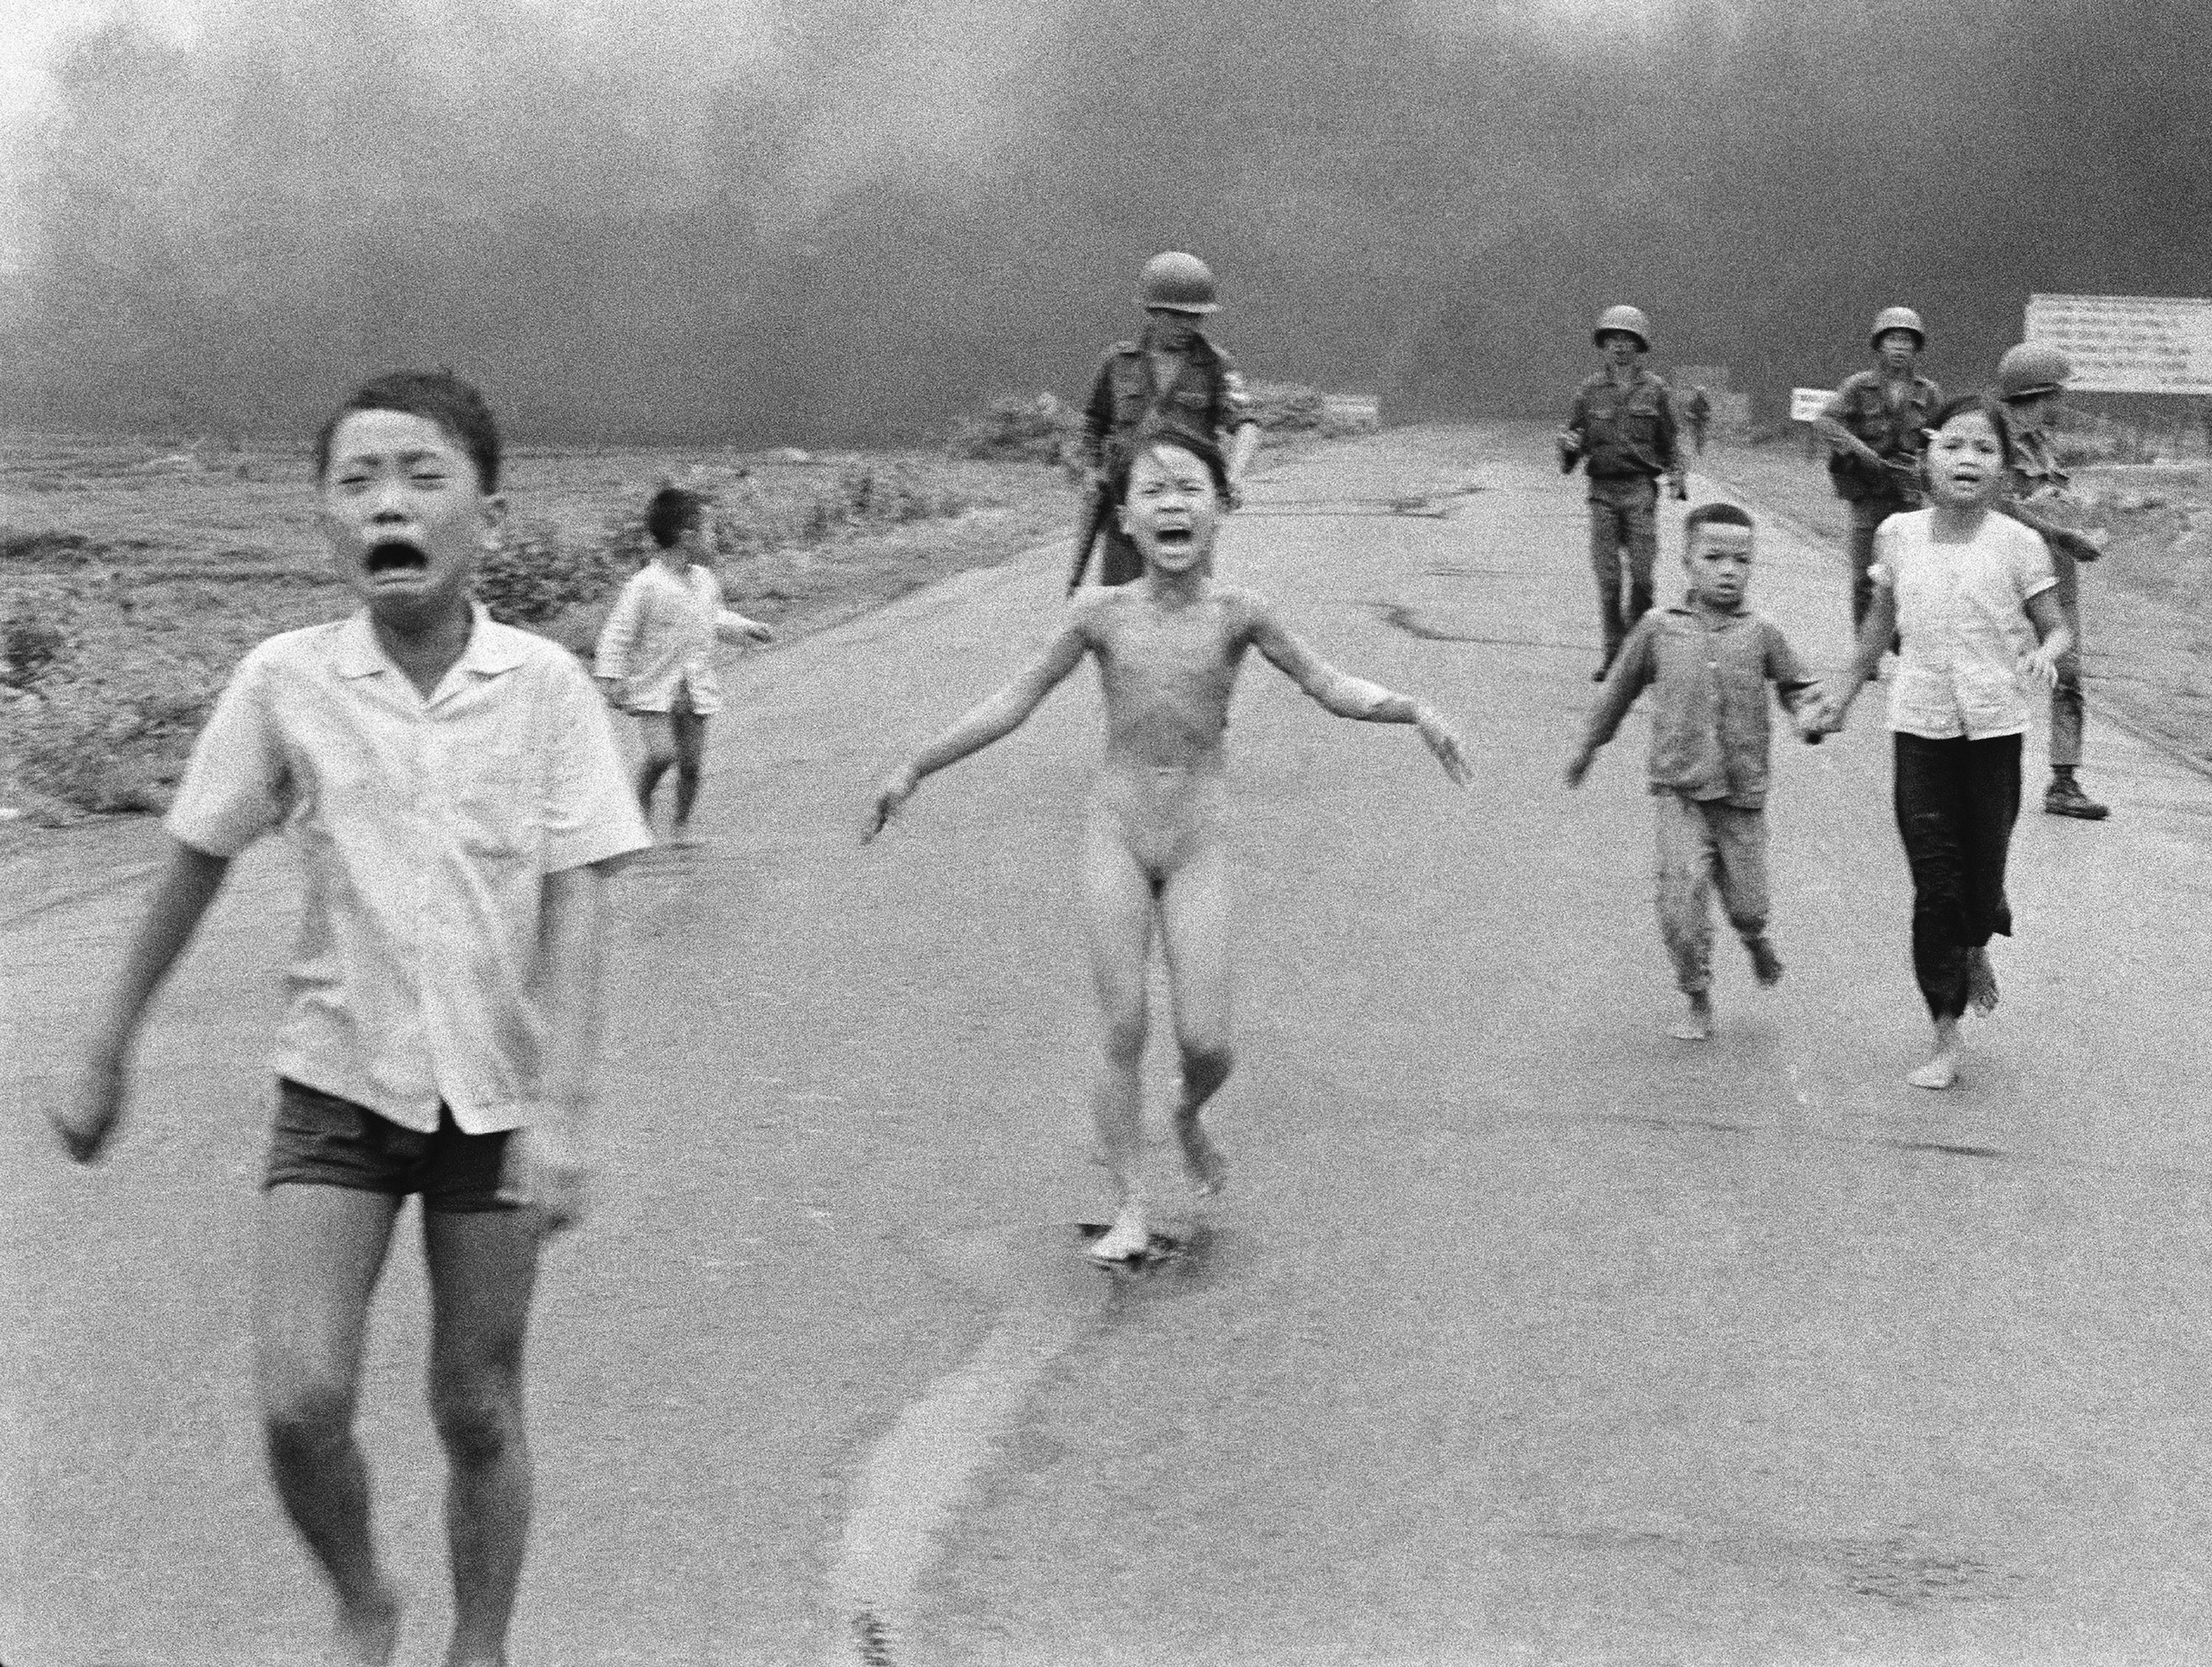 Napalm girl (Kim Phuc), Vietnam (June 8, 1972)